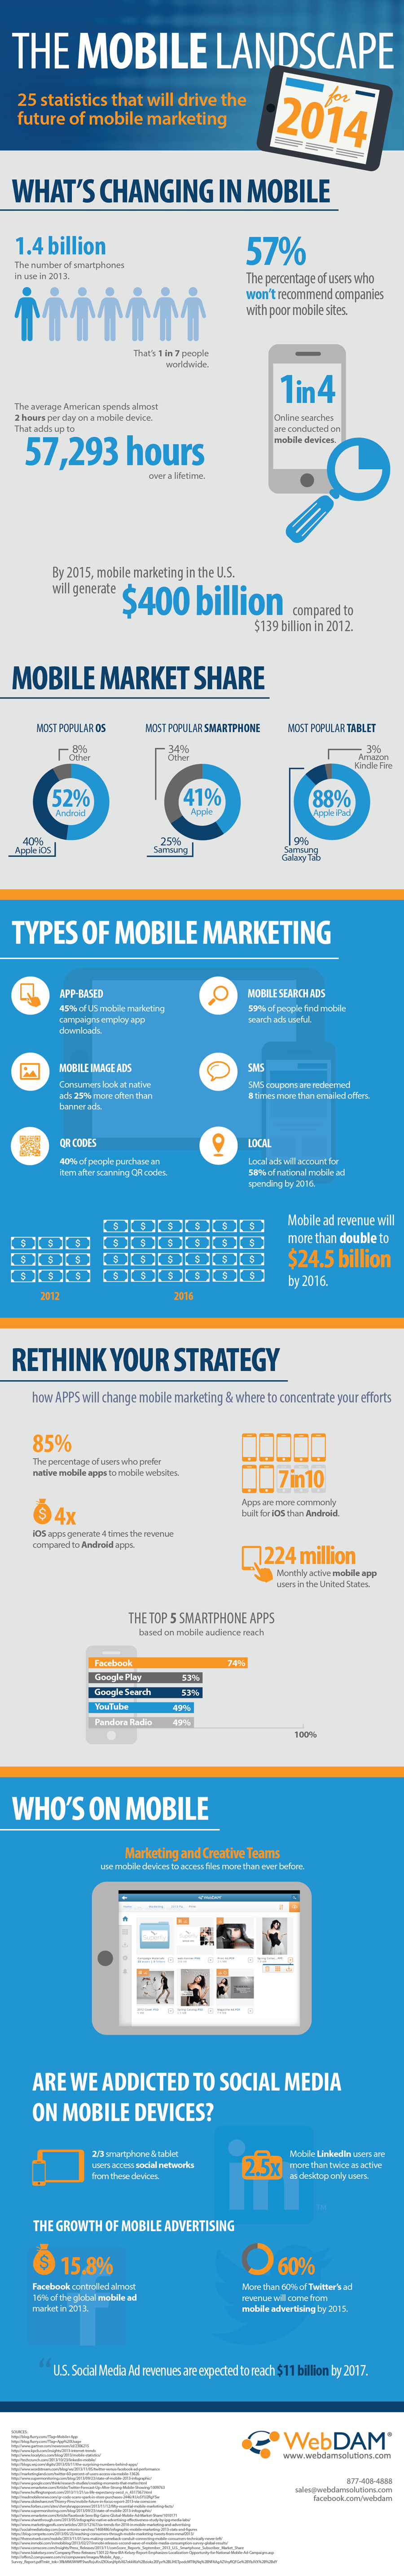 Mobile-Marketing-Infographic-20141